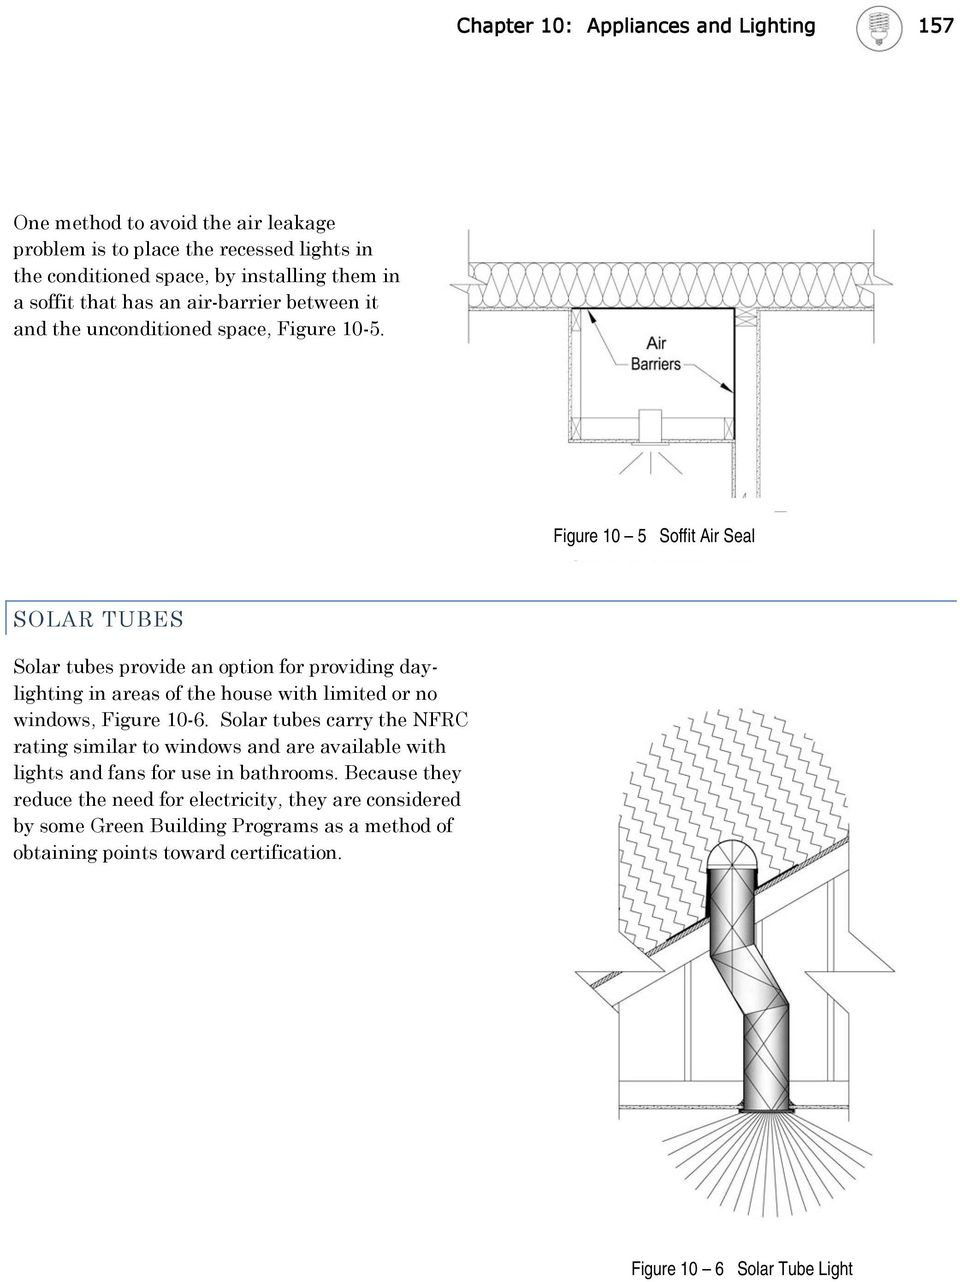 Figure 10 5 Soffit Air Seal SOLAR TUBES Solar tubes provide an option for providing daylighting in areas of the house with limited or no windows, Figure 10-6.